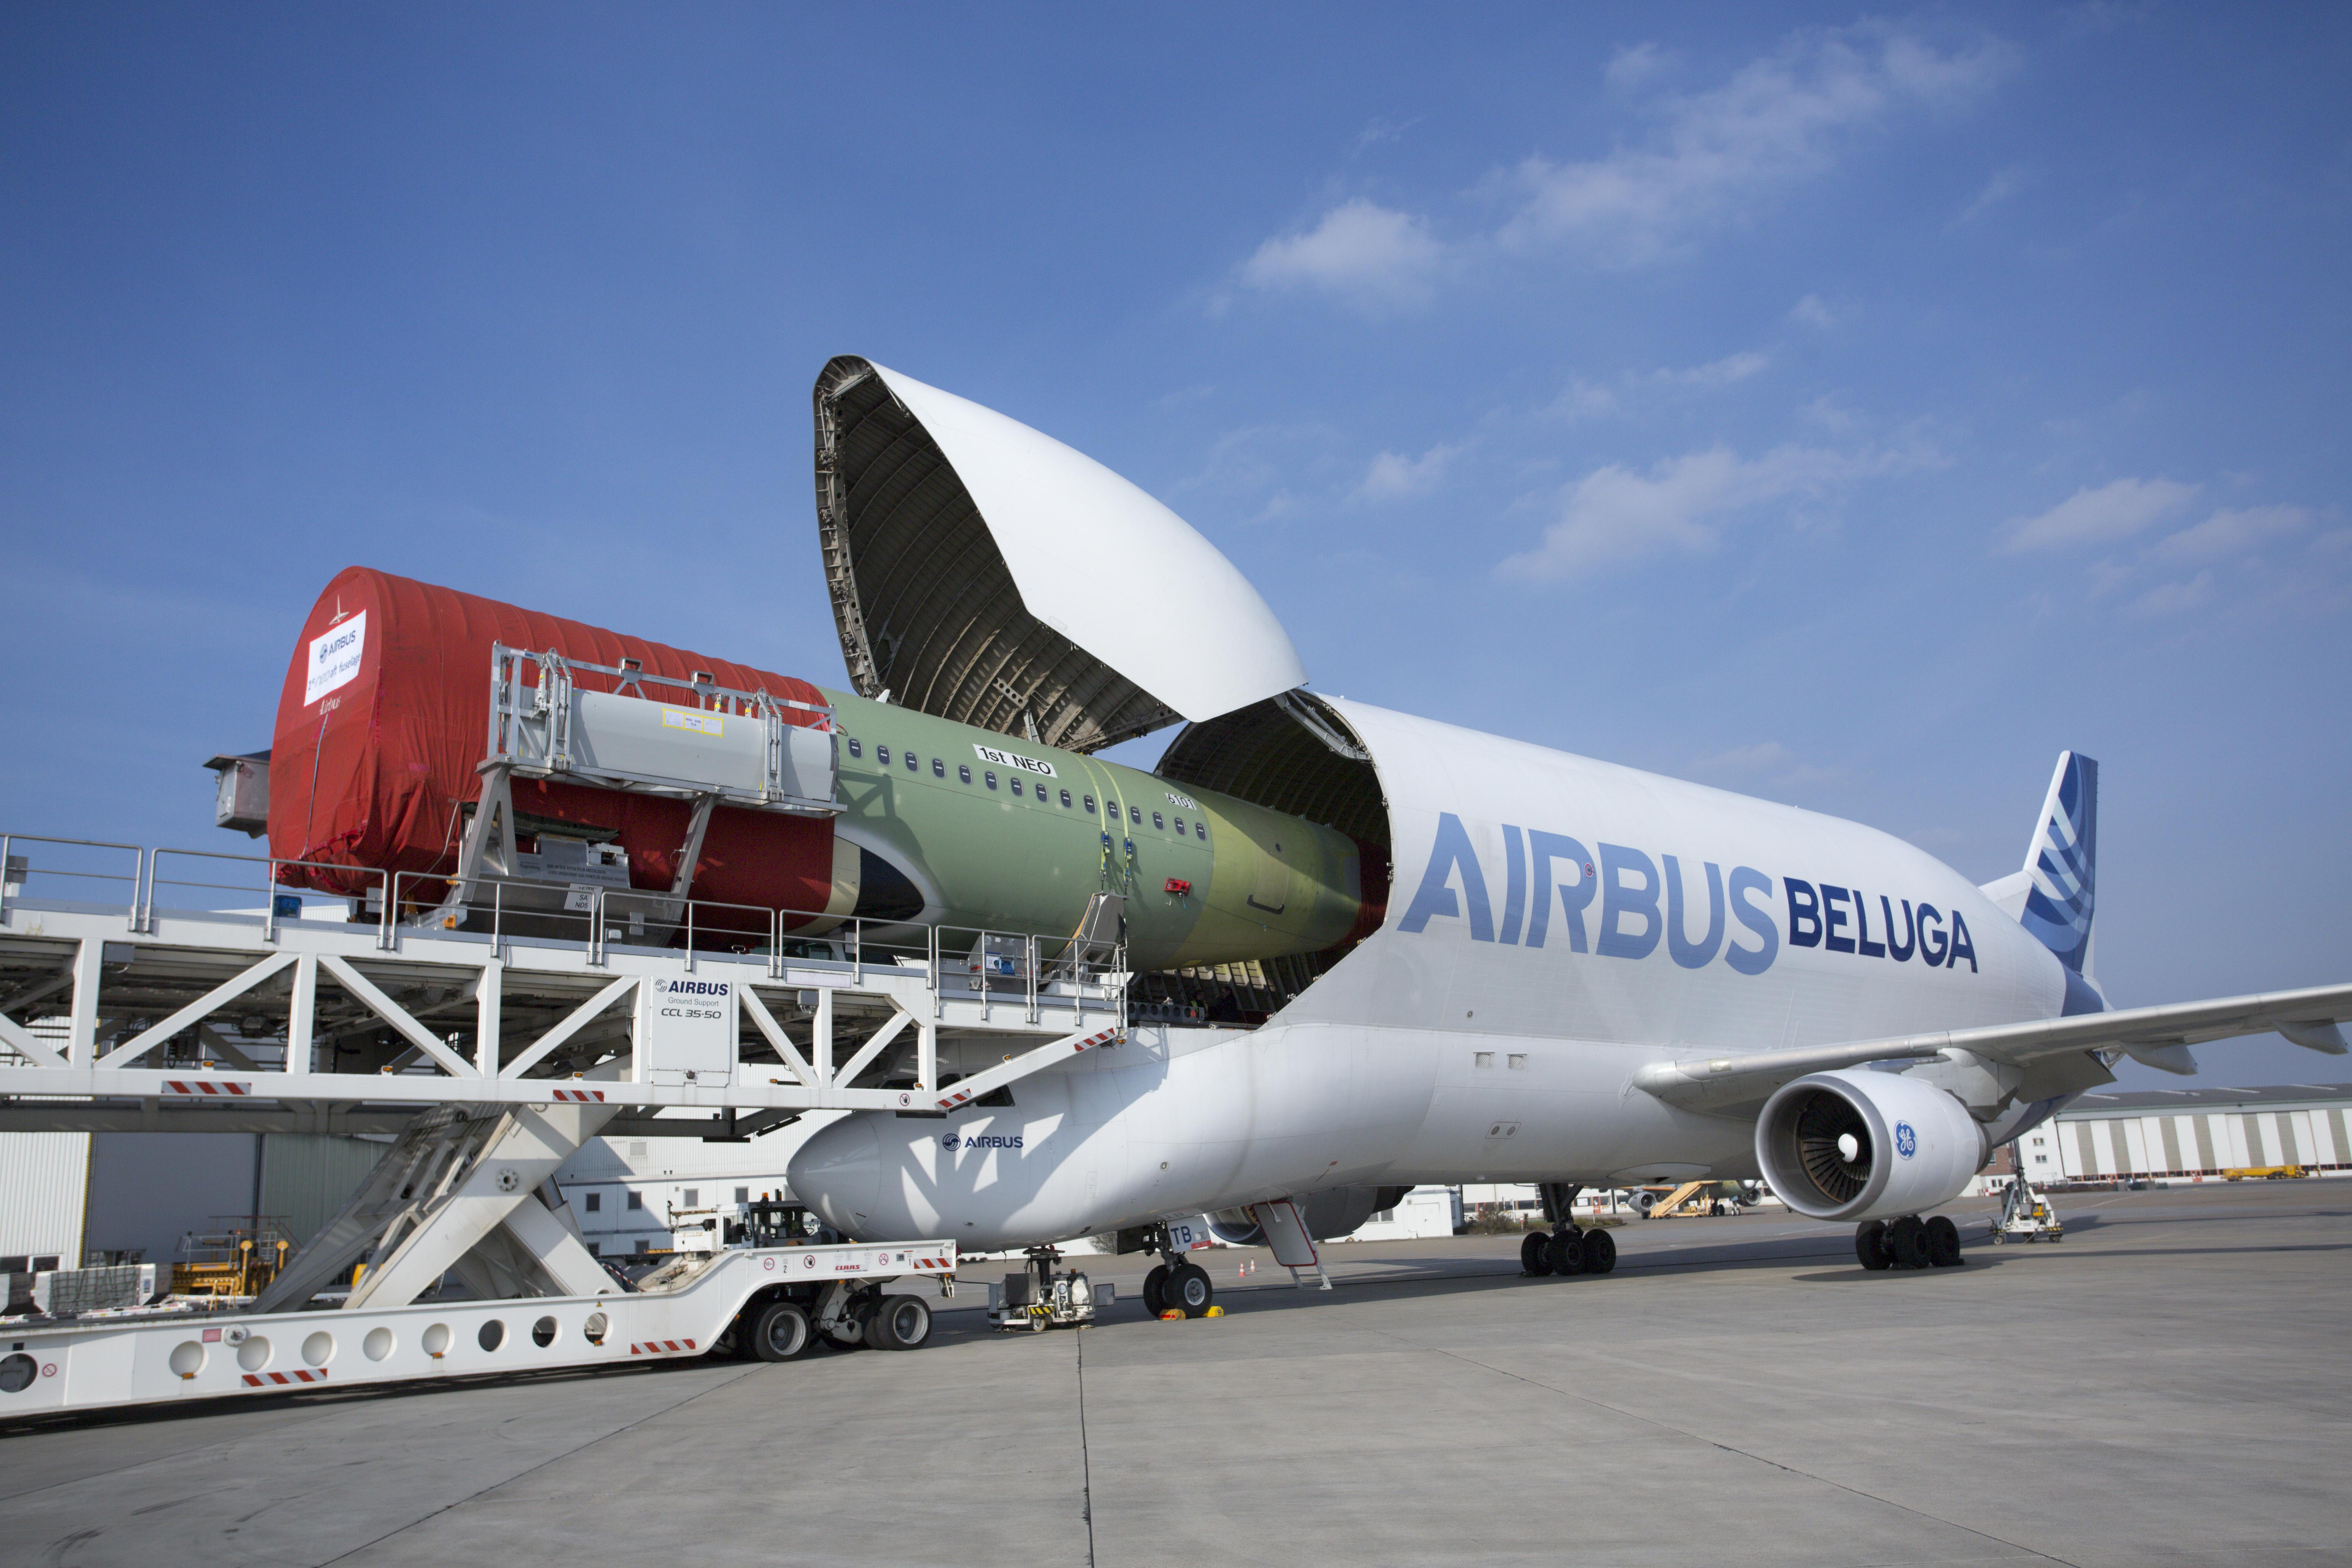 MSN 6101 First NEO fuselage loading into Beluga from HAM to TLS